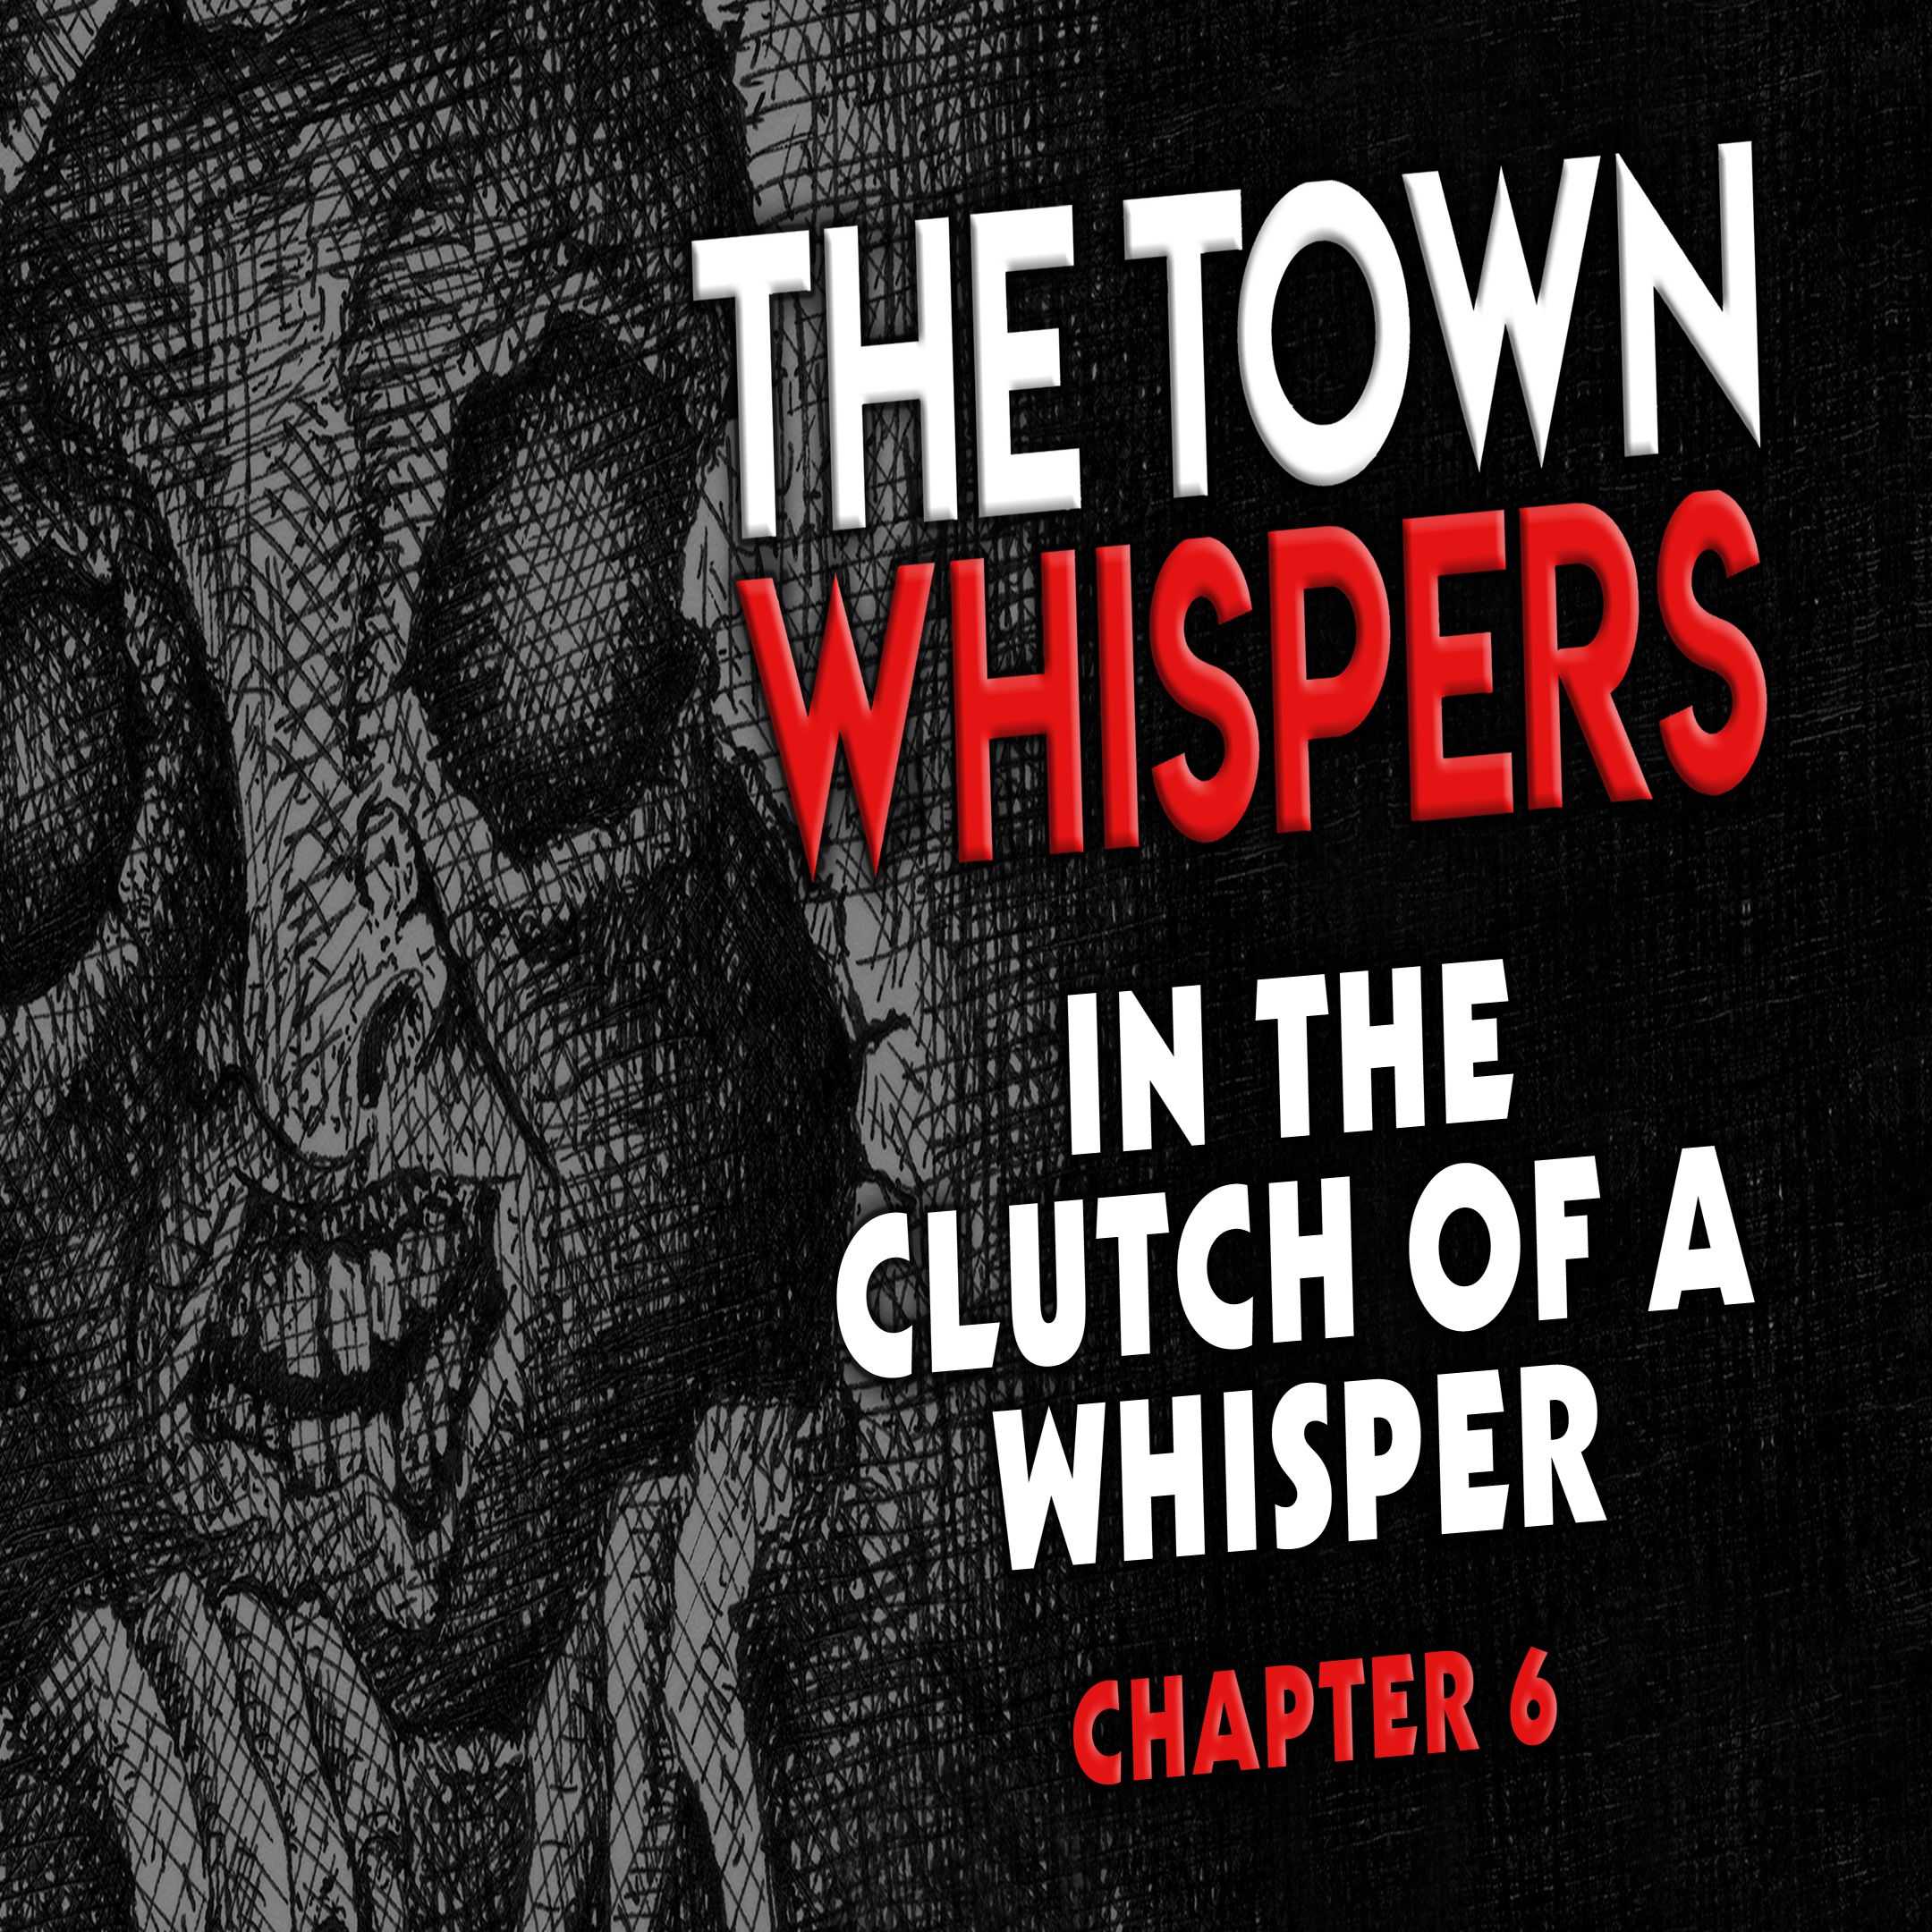 Chapter 6: In the Clutch of a Whisper